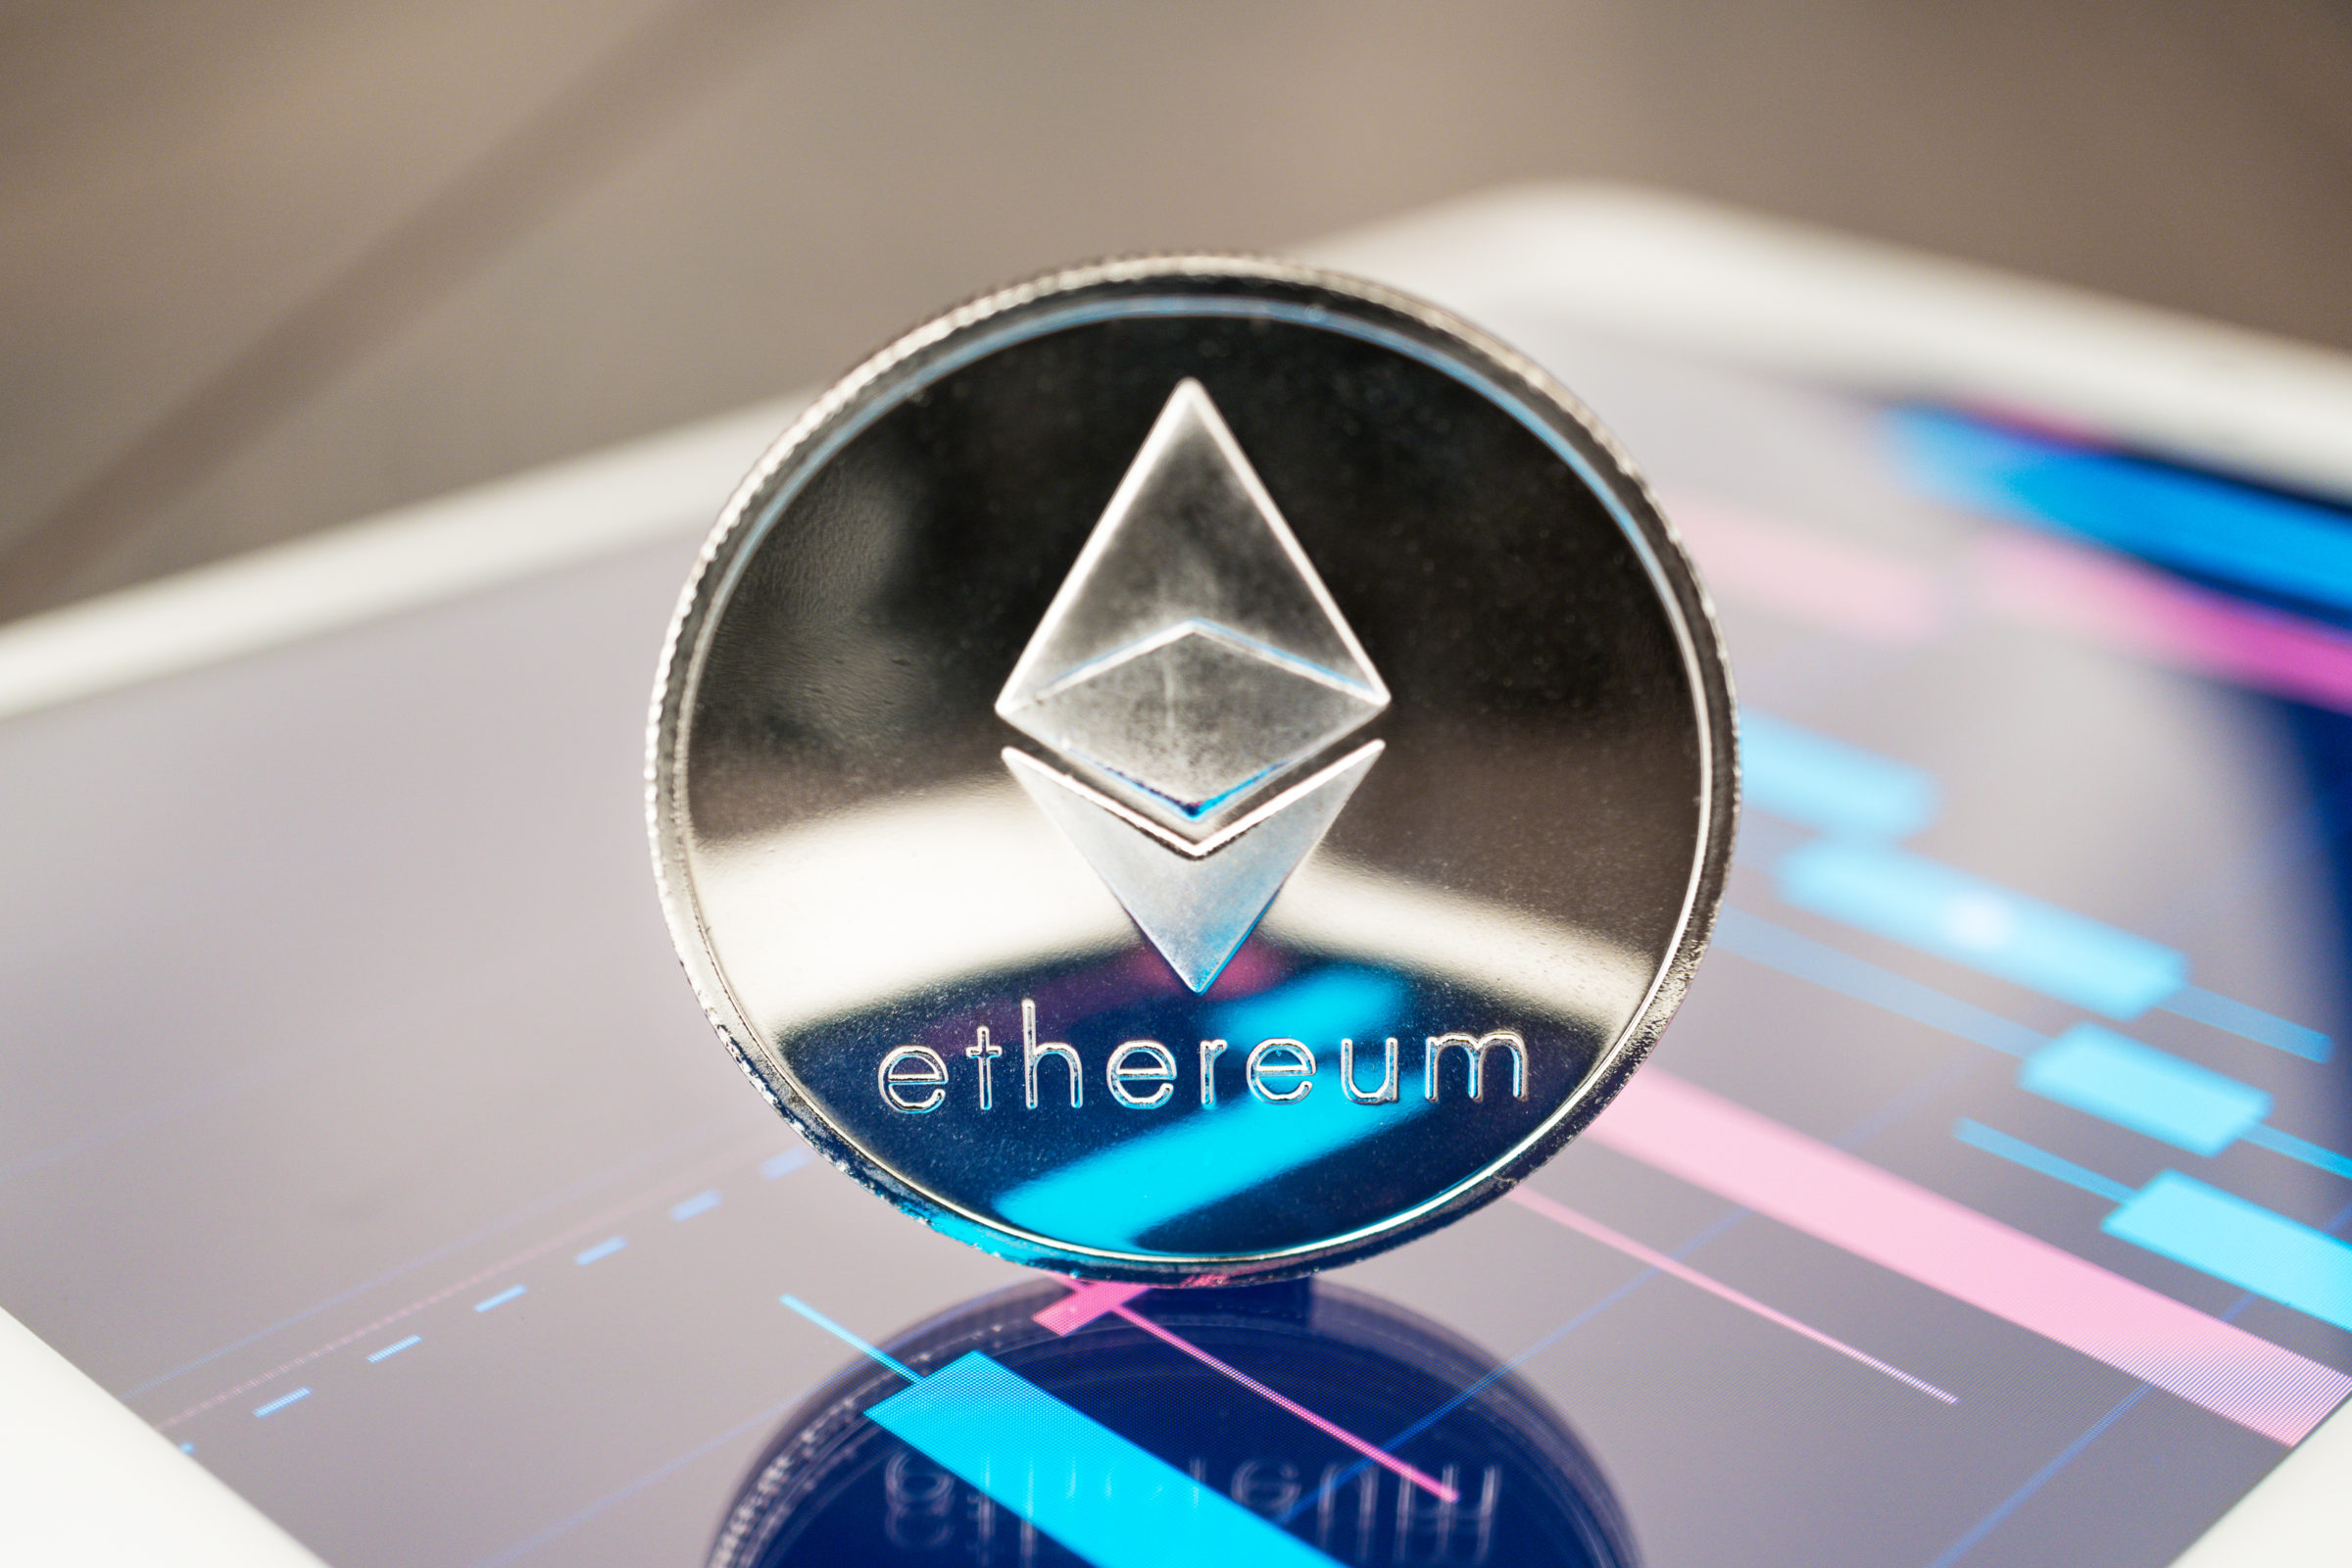 ether cryptocurrency on the tablet WUBHEYL